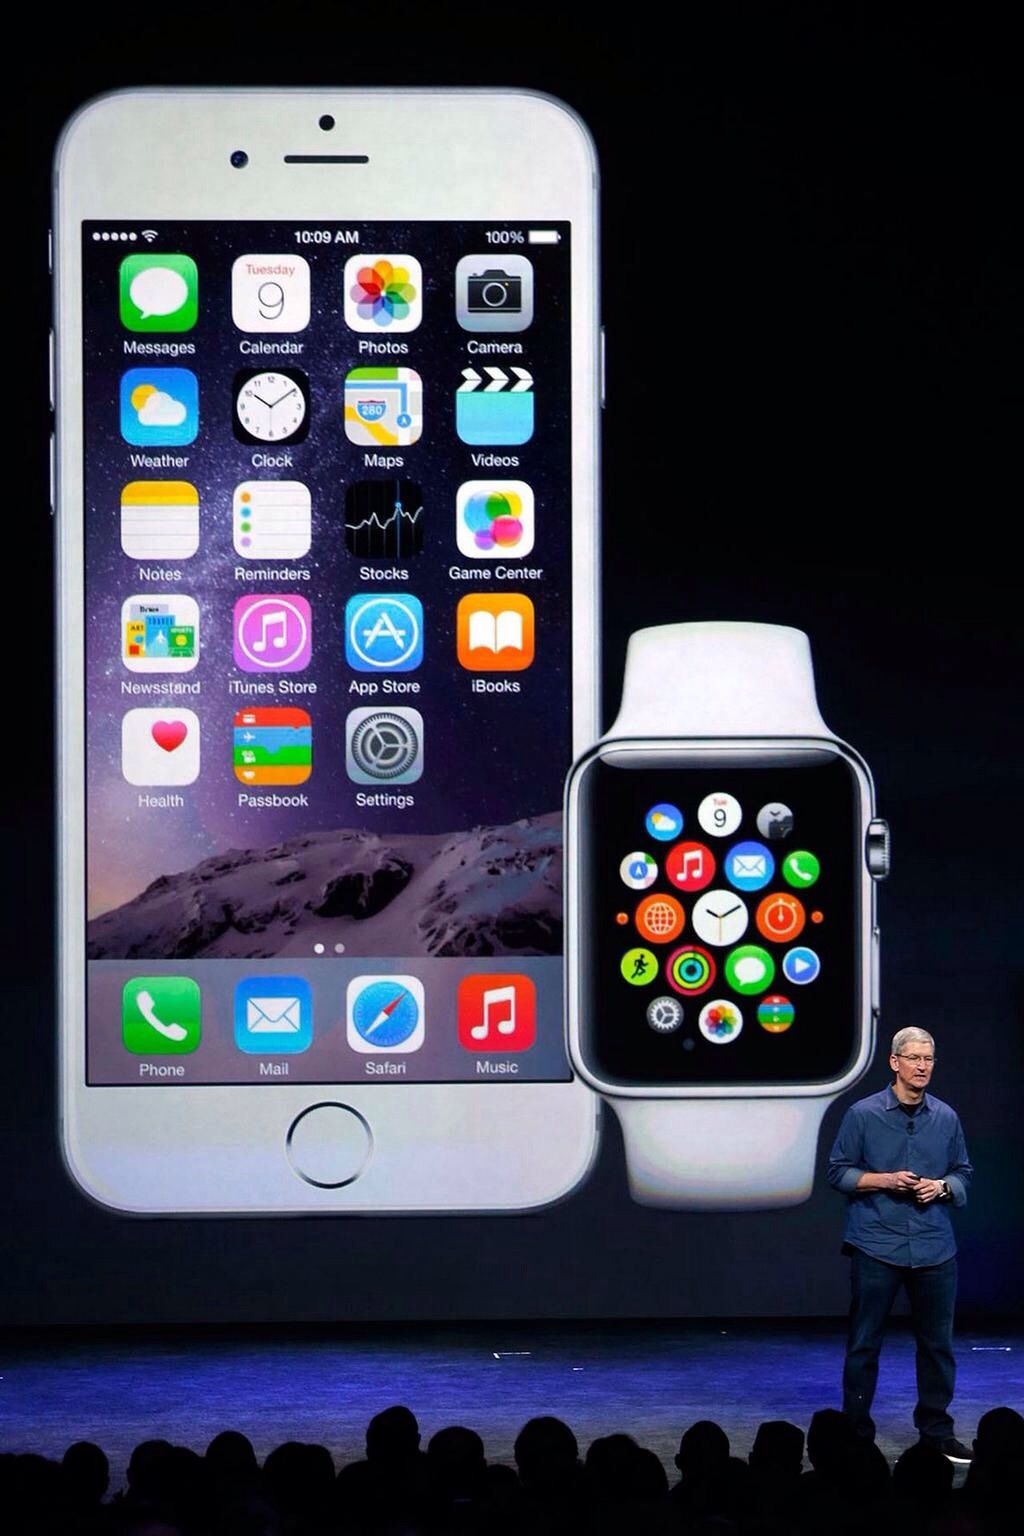 iPhone 6 and Apple Watch in pictures Apple watch, Iphone